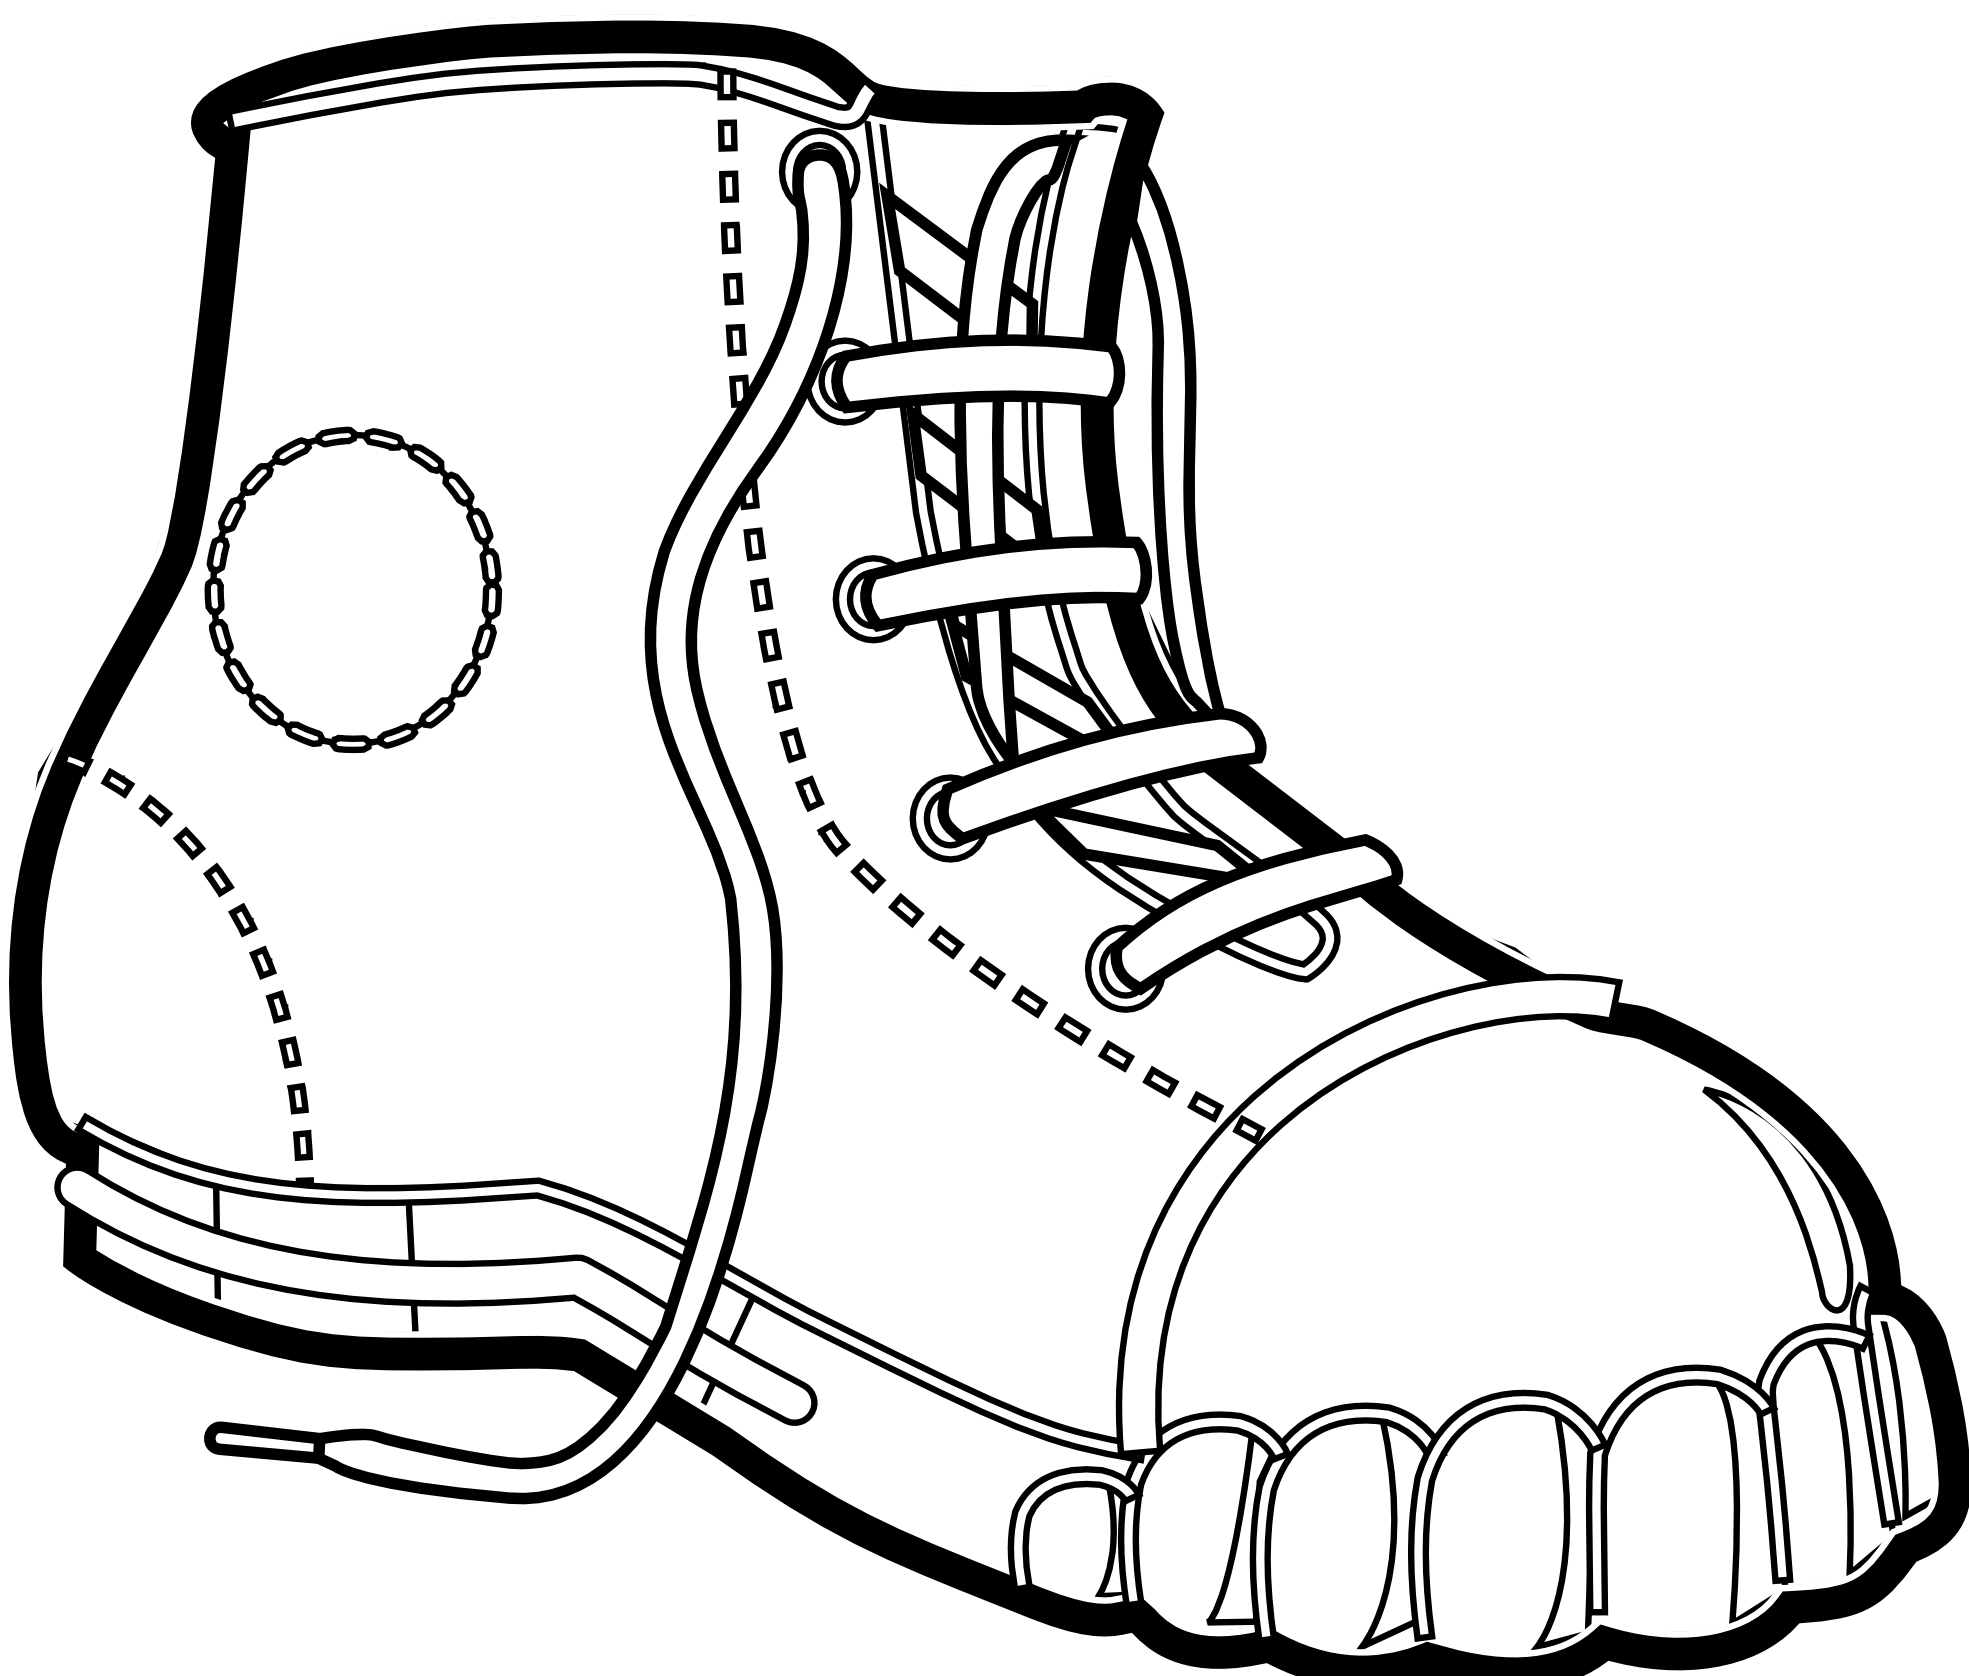 1969x1676 Boots Clipart Black And White